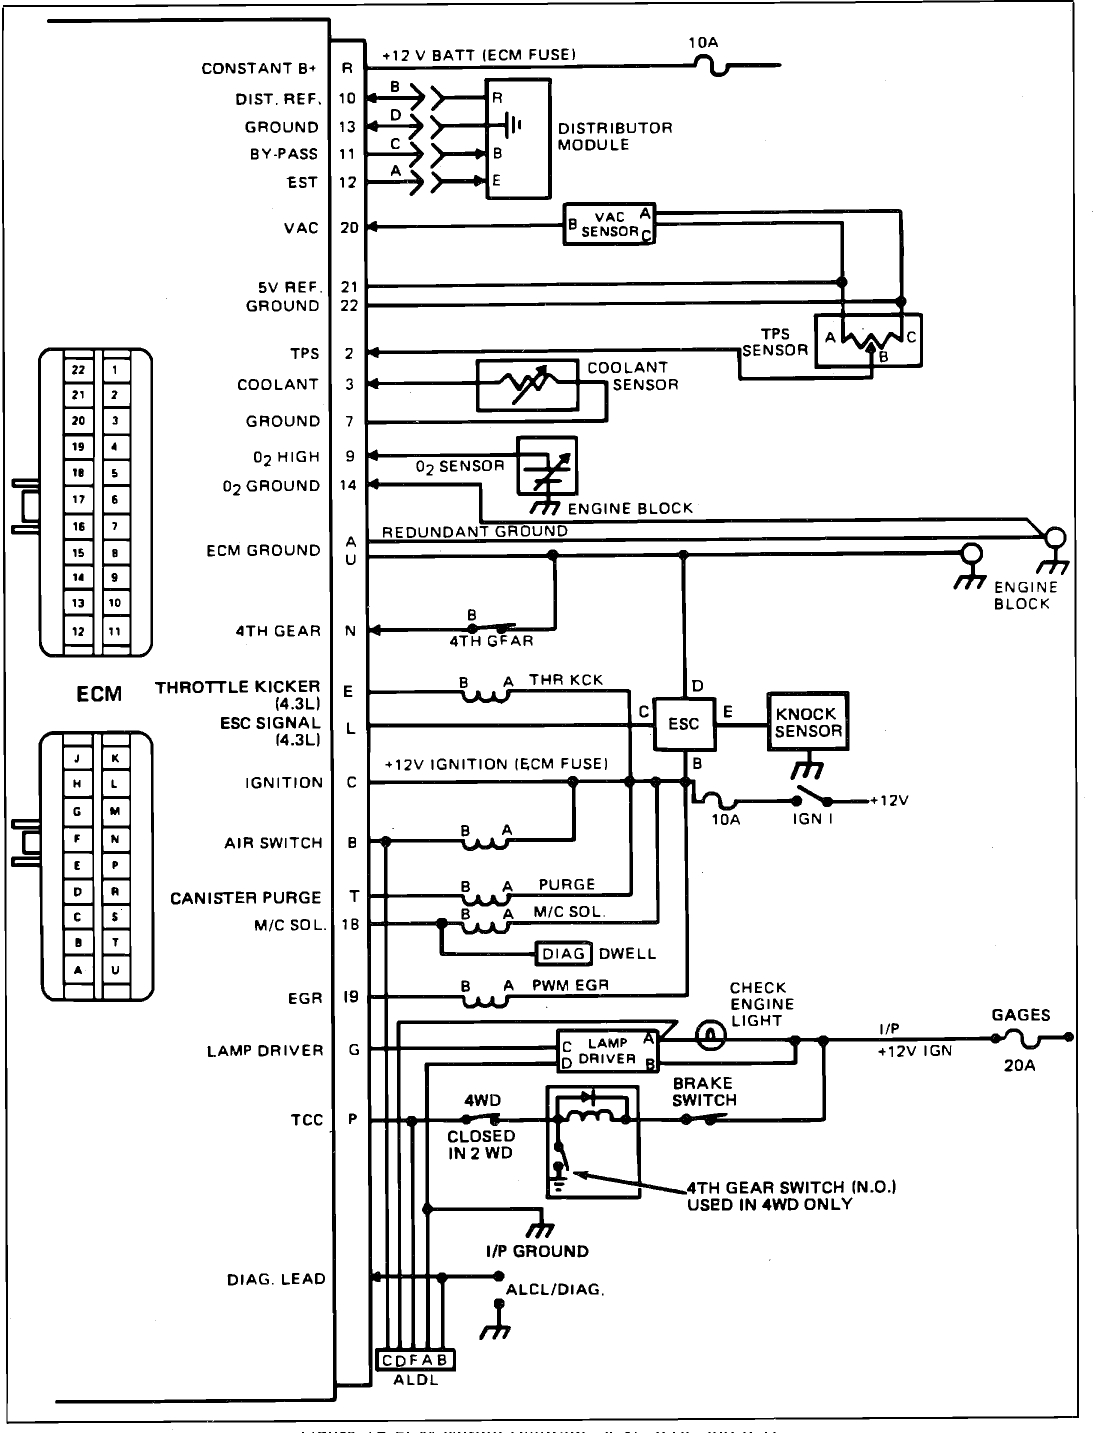 chevy truck fuse box diagram image details house wiring diagram rh  maxturner co 1998 chevy fuse box diagram 1998 chevy blazer fuse box diagram